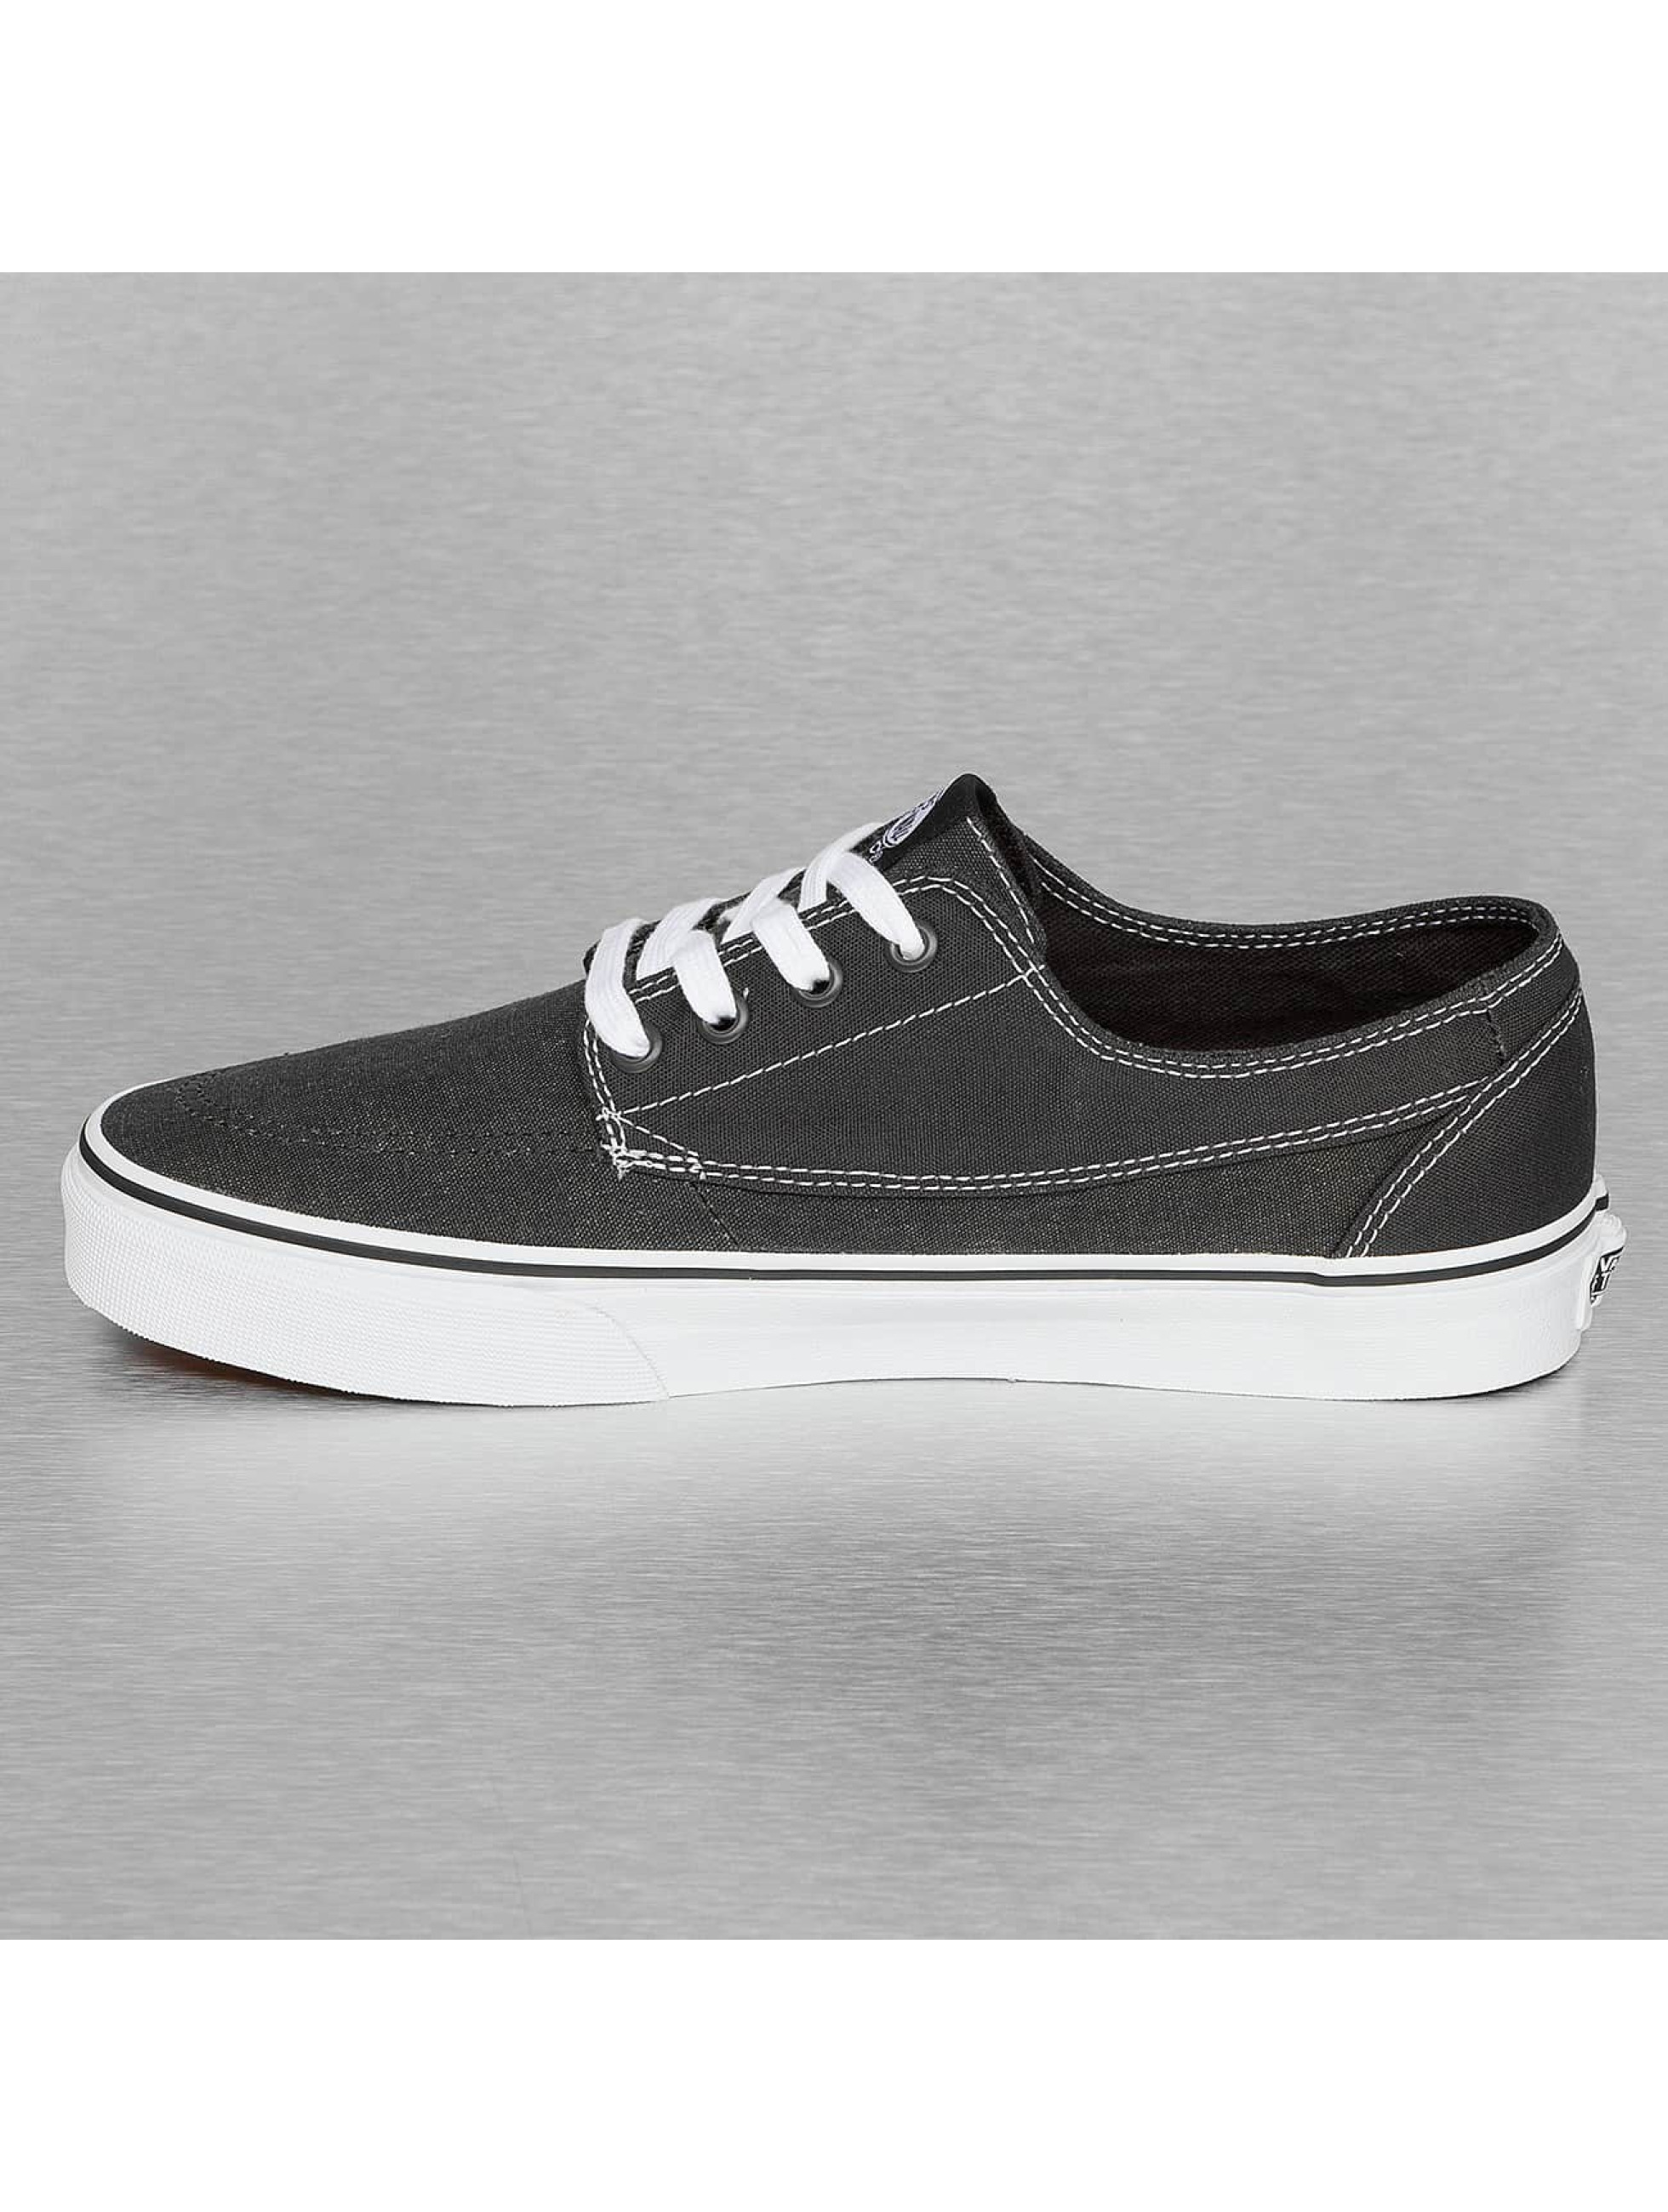 Vans Sneaker Brigata Washed Canvas schwarz